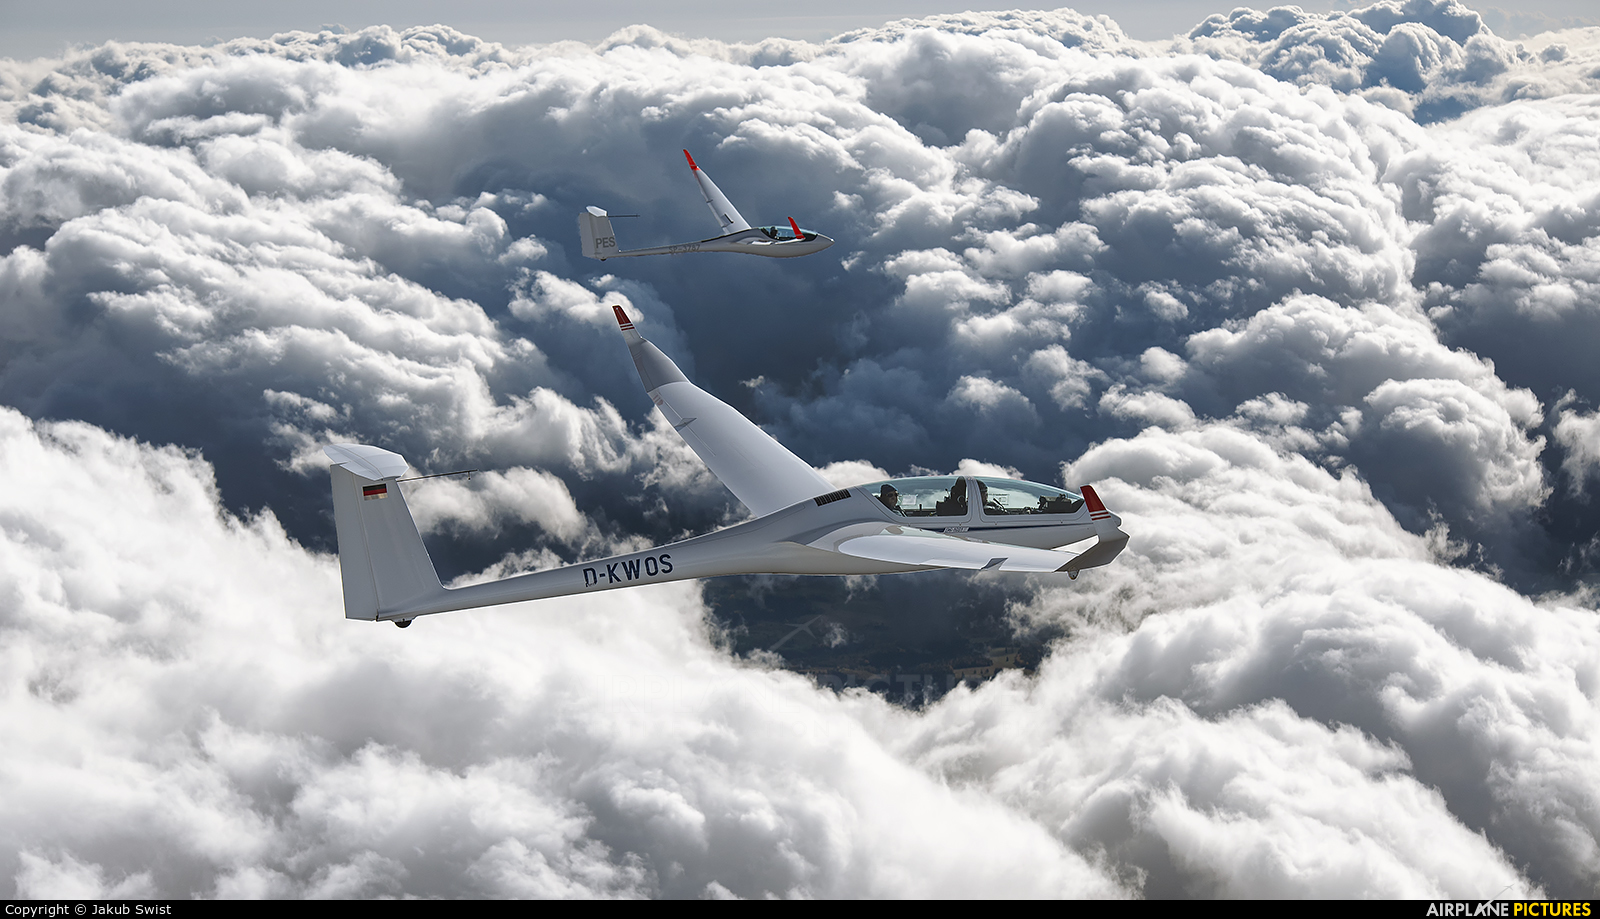 Private D-KWOS aircraft at In Flight - Poland